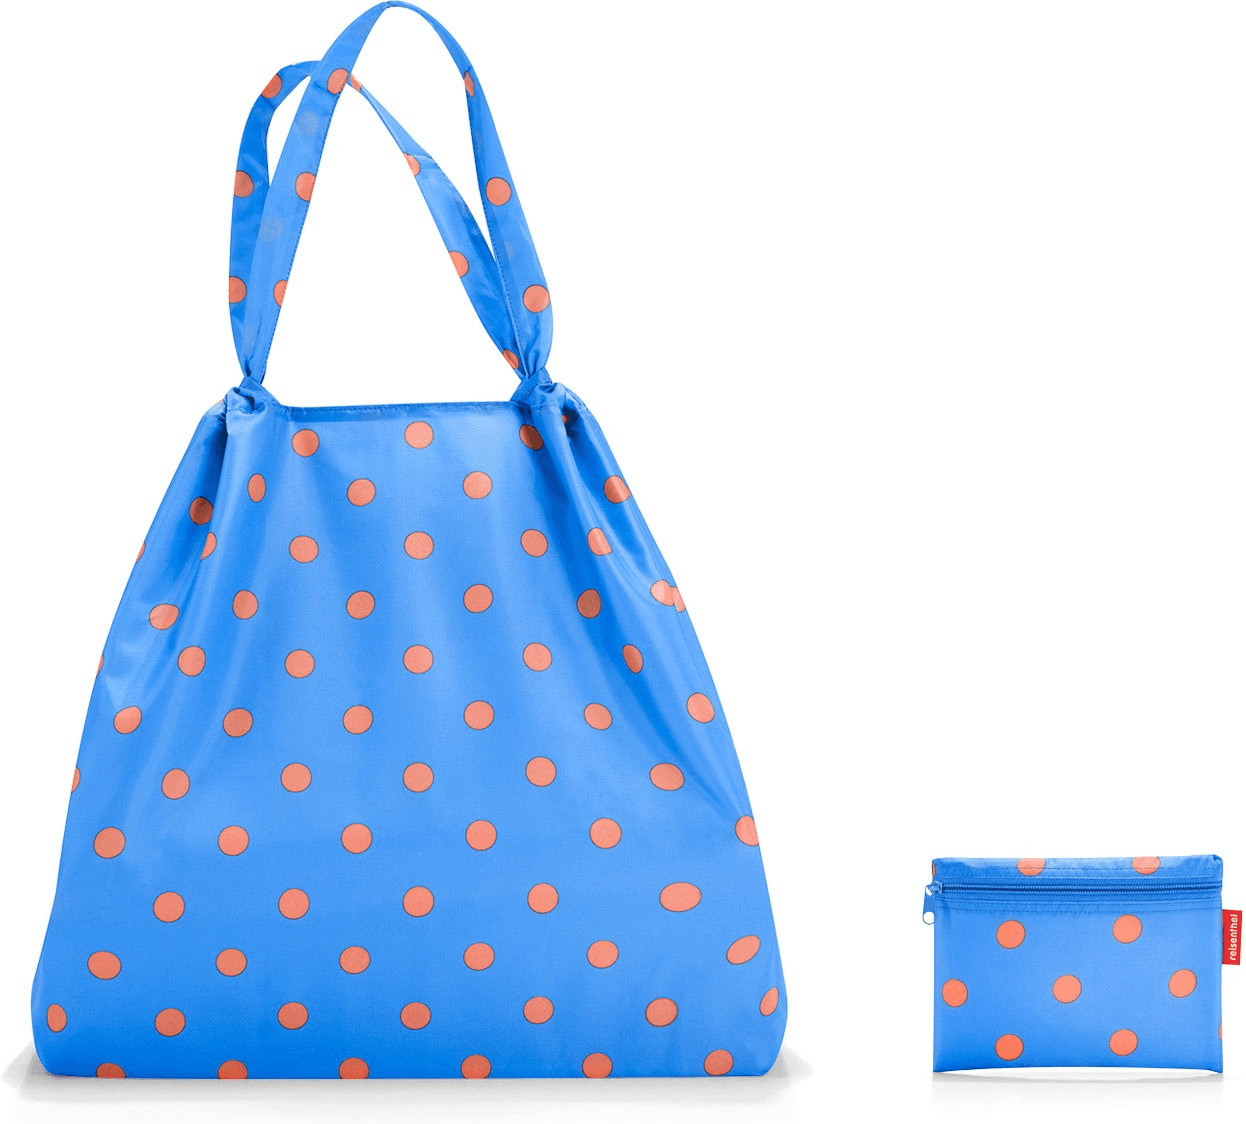 Reisenthel Mini Maxi Loftbag azure dots